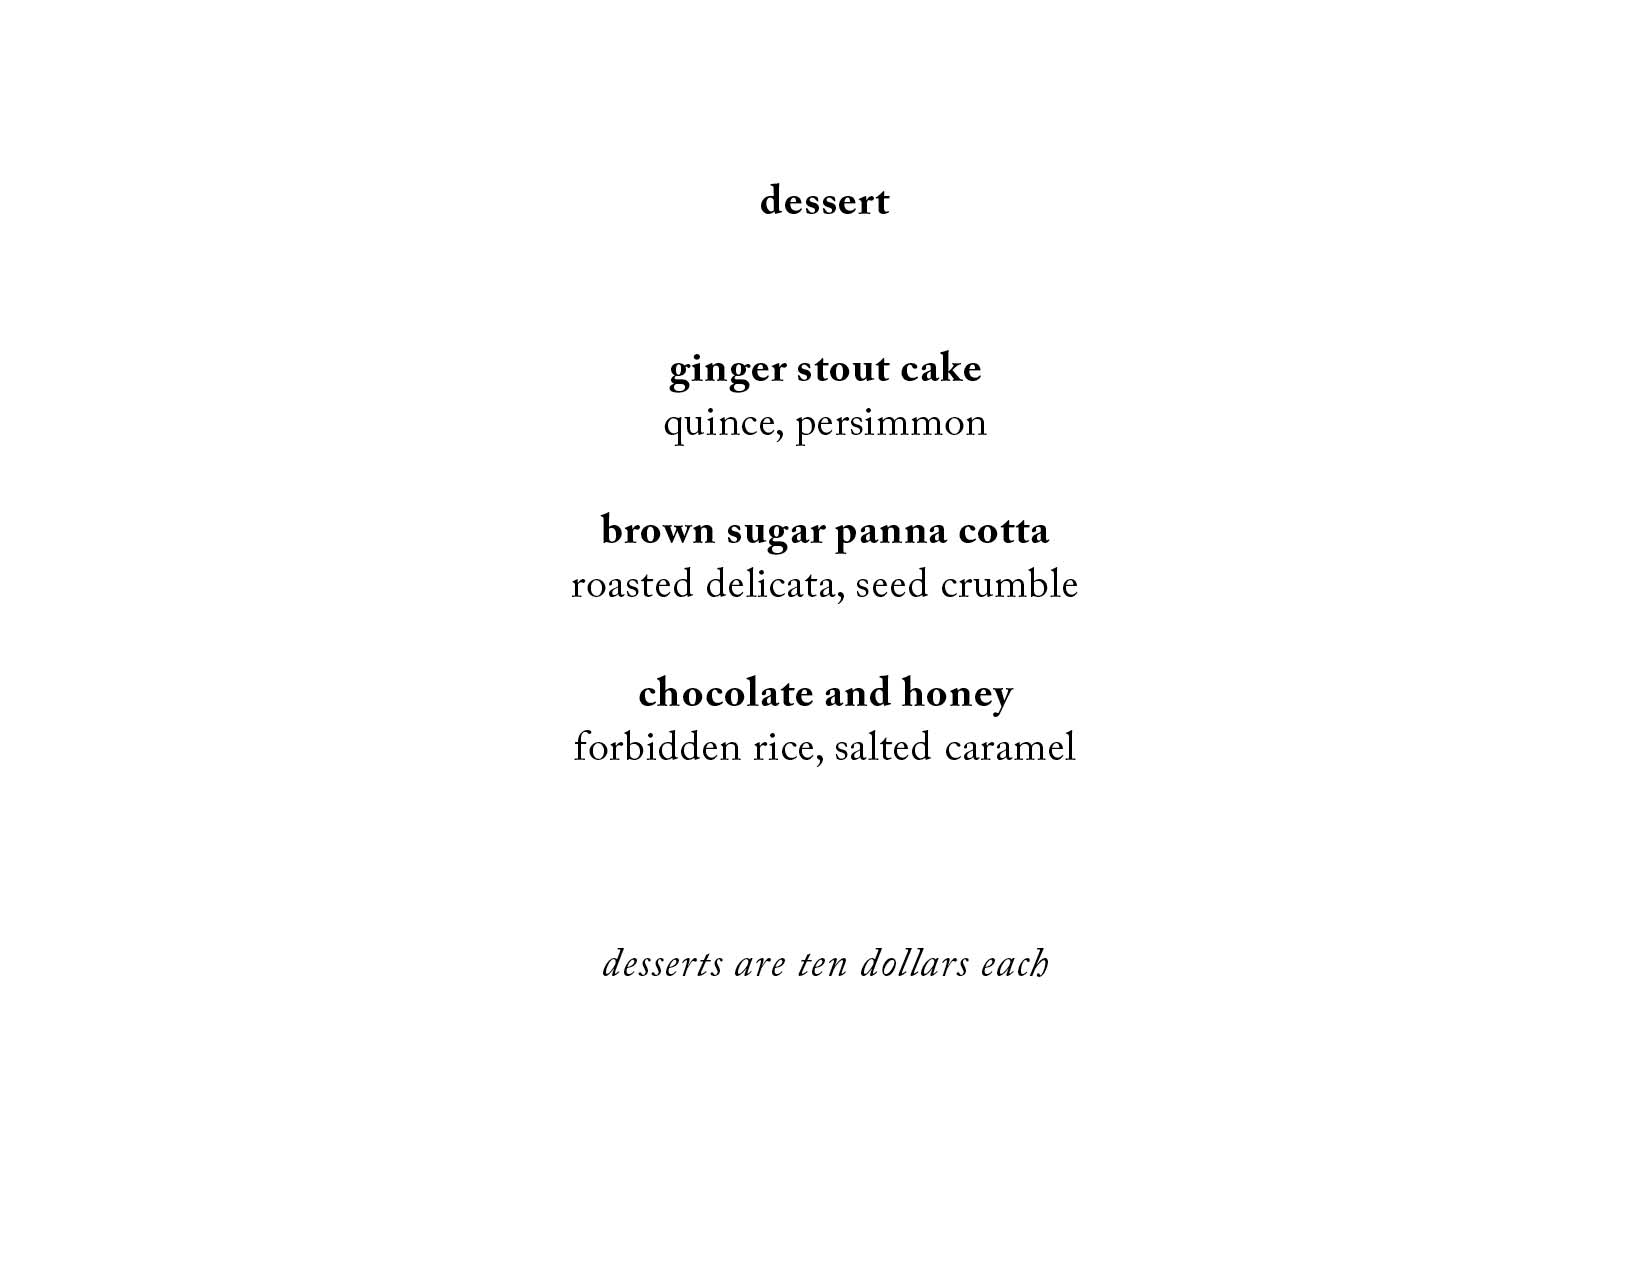 * please note that this is a sample menu